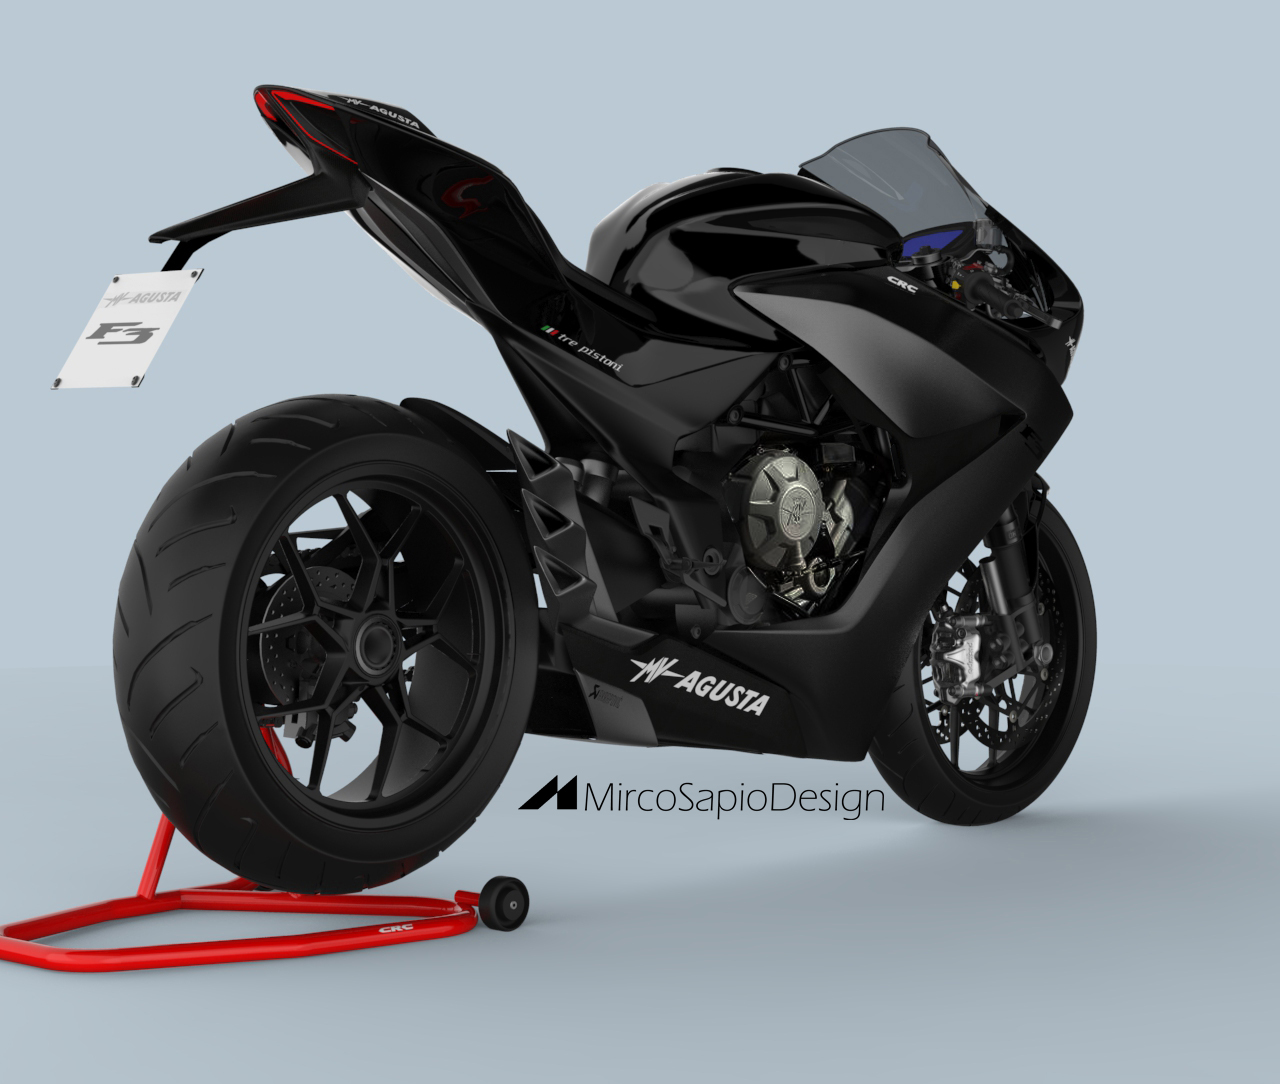 Details about  /Strada 7 Motorcycle Comfort Grip Covers MV Agusta F3 800 2015-2016